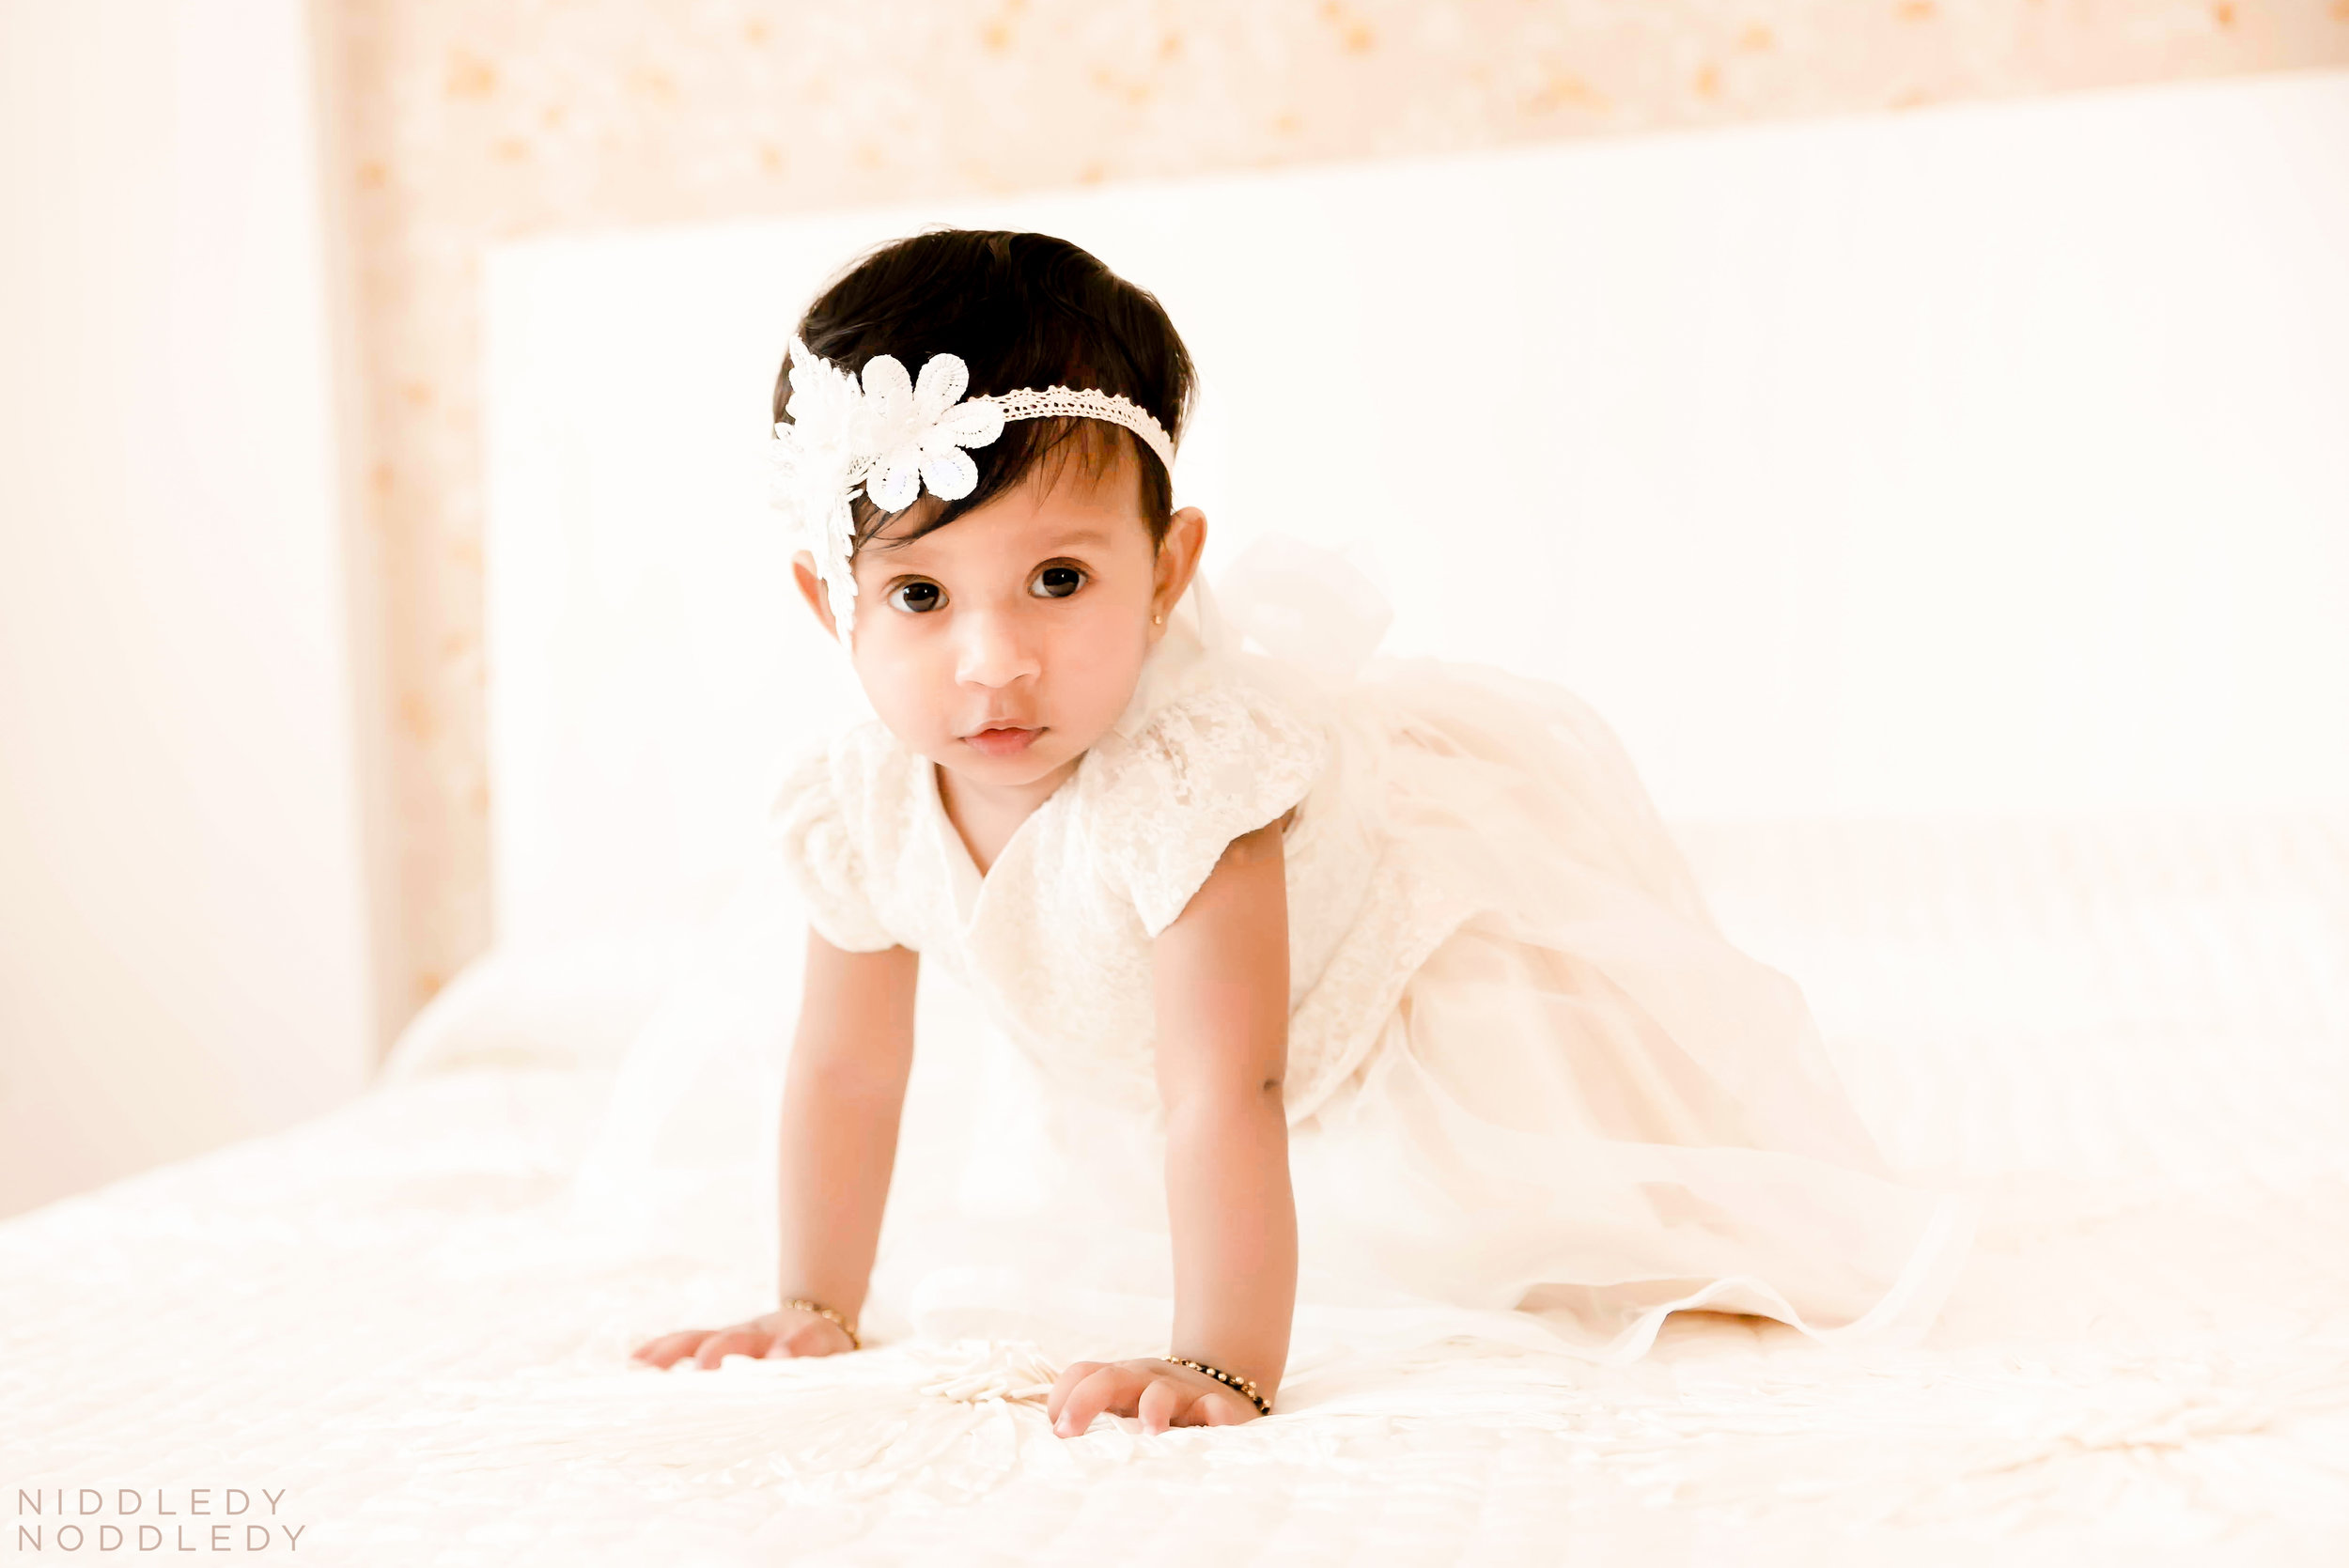 Anaisha Baby Photoshoot ❤ NiddledyNoddledy.com ~ Bumps to Babies Photography, Kolkata - 147.jpg